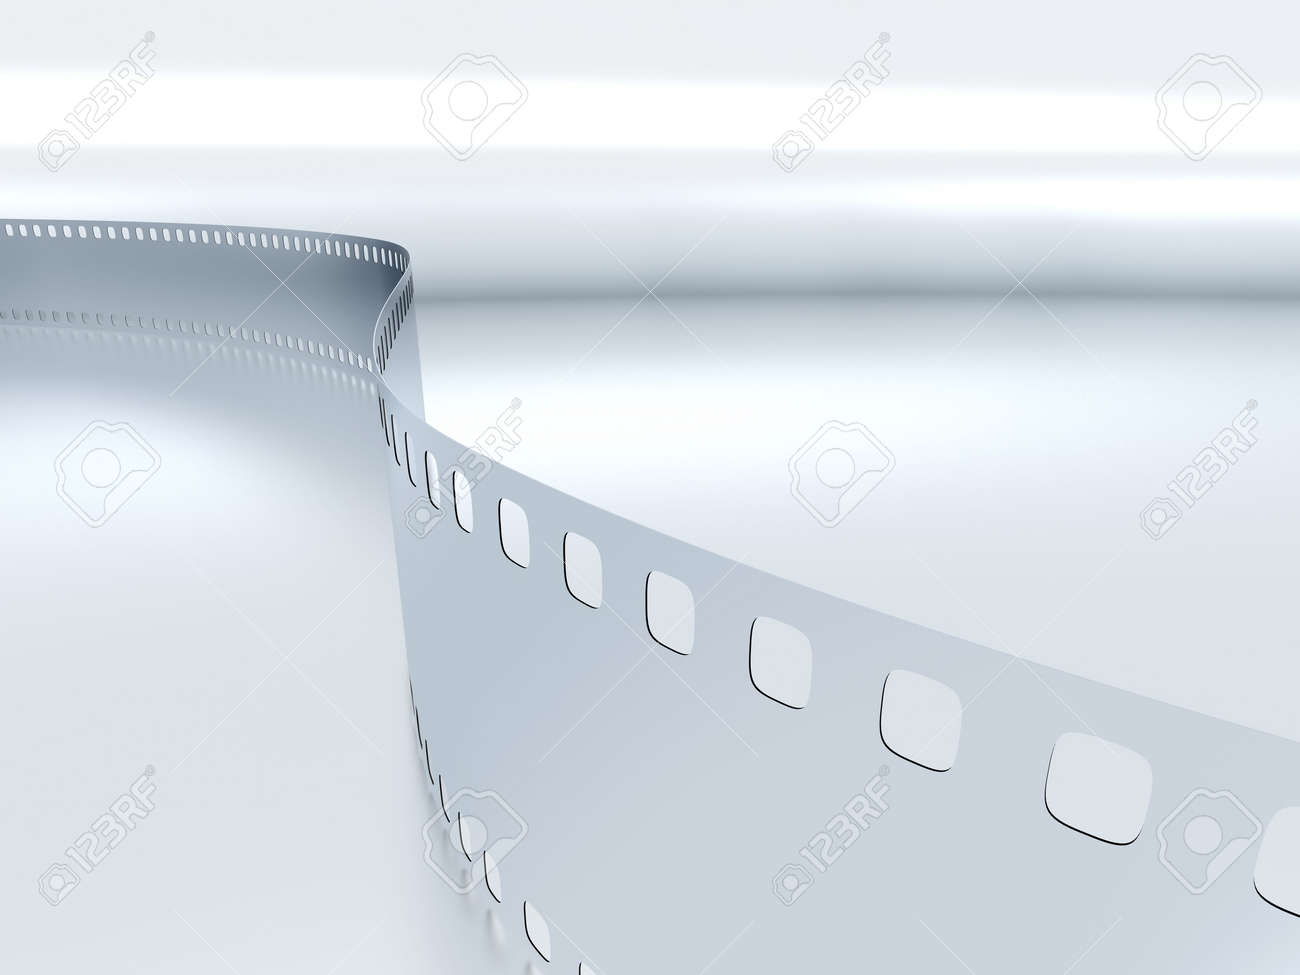 model of a photo film on a blue metallic background Stock Photo - 4873953